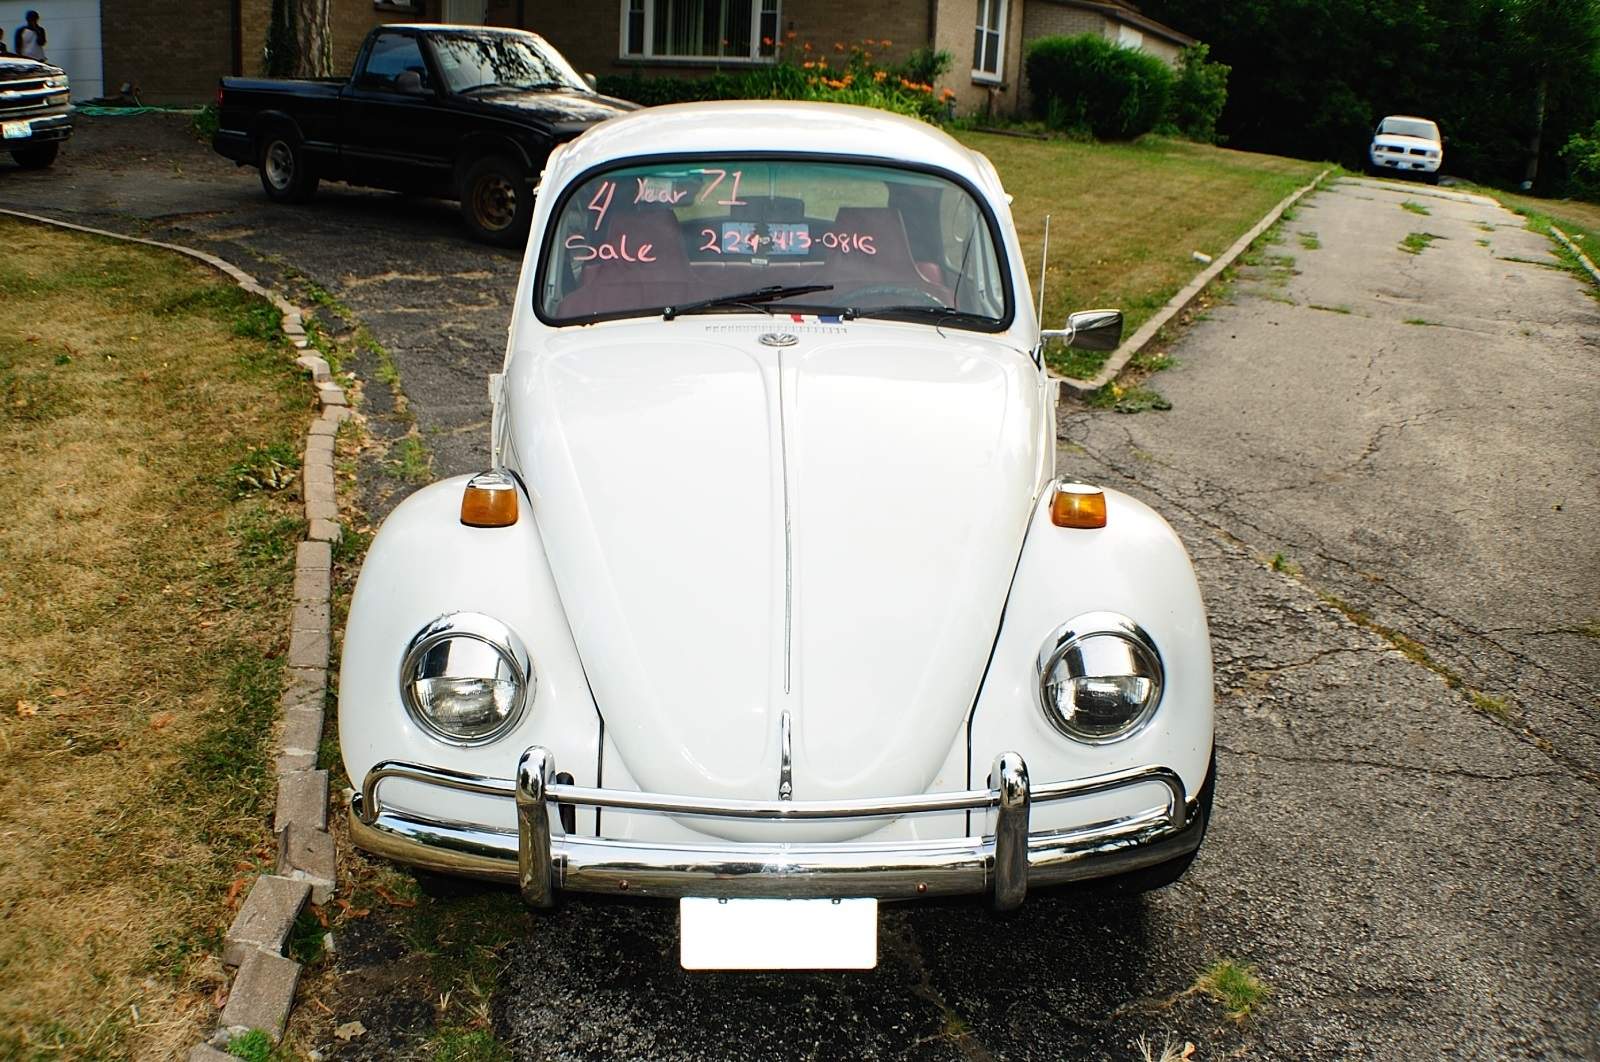 1971 Volkswagen Bug Beetle Herbie Replica Manual VW Sale Bannockburn Barrington Beach Park